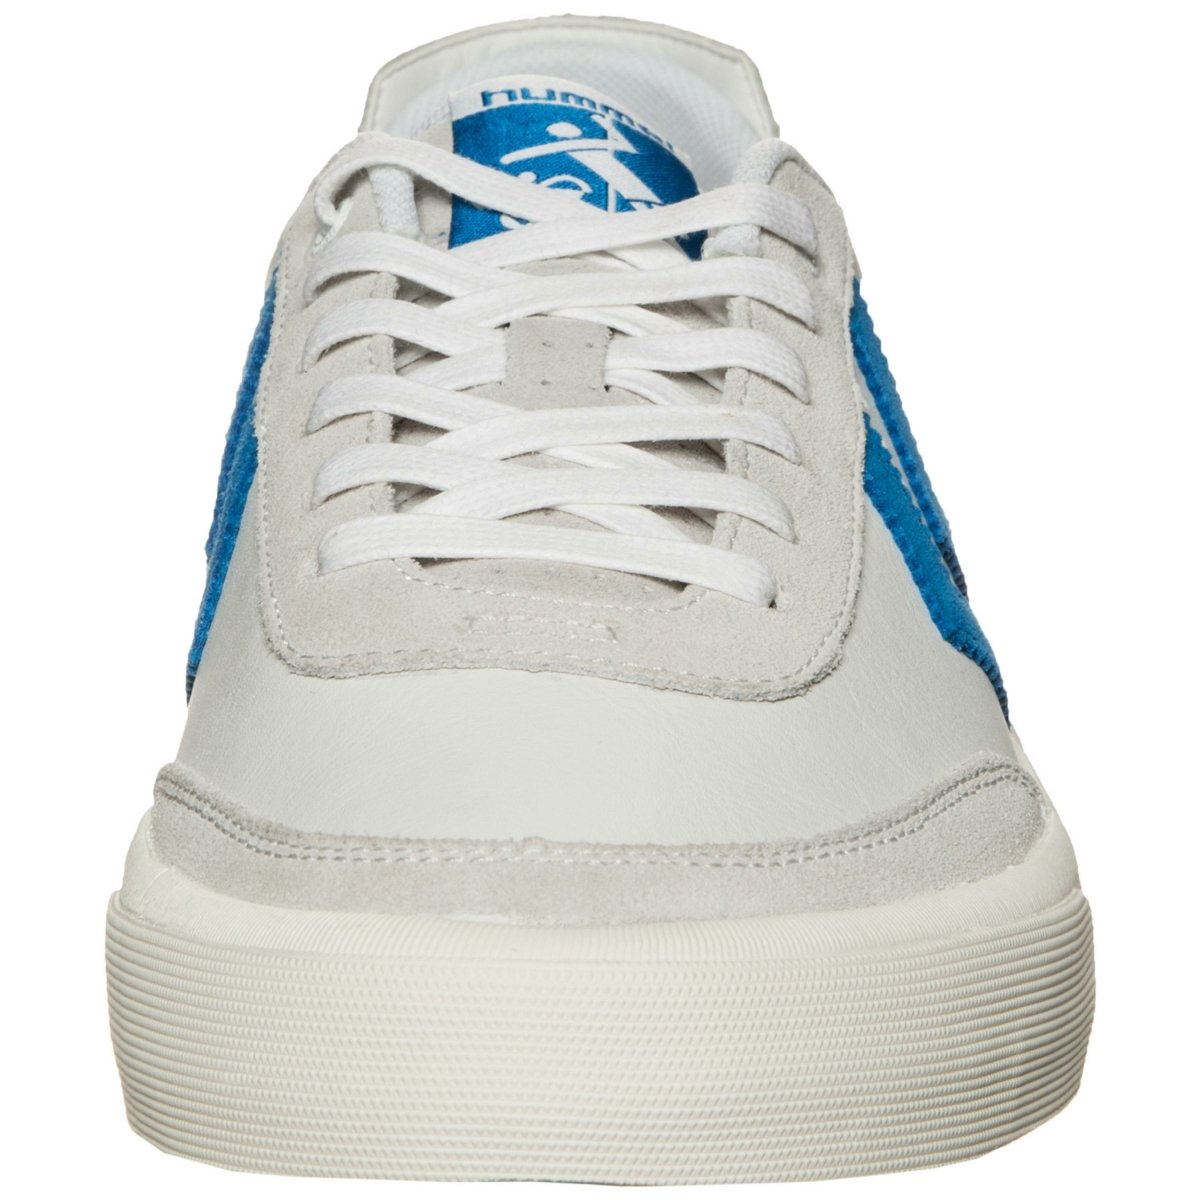 7393 Hummel Low Stockholm 64431 Everysize In Weiss wrXxrUzqn4